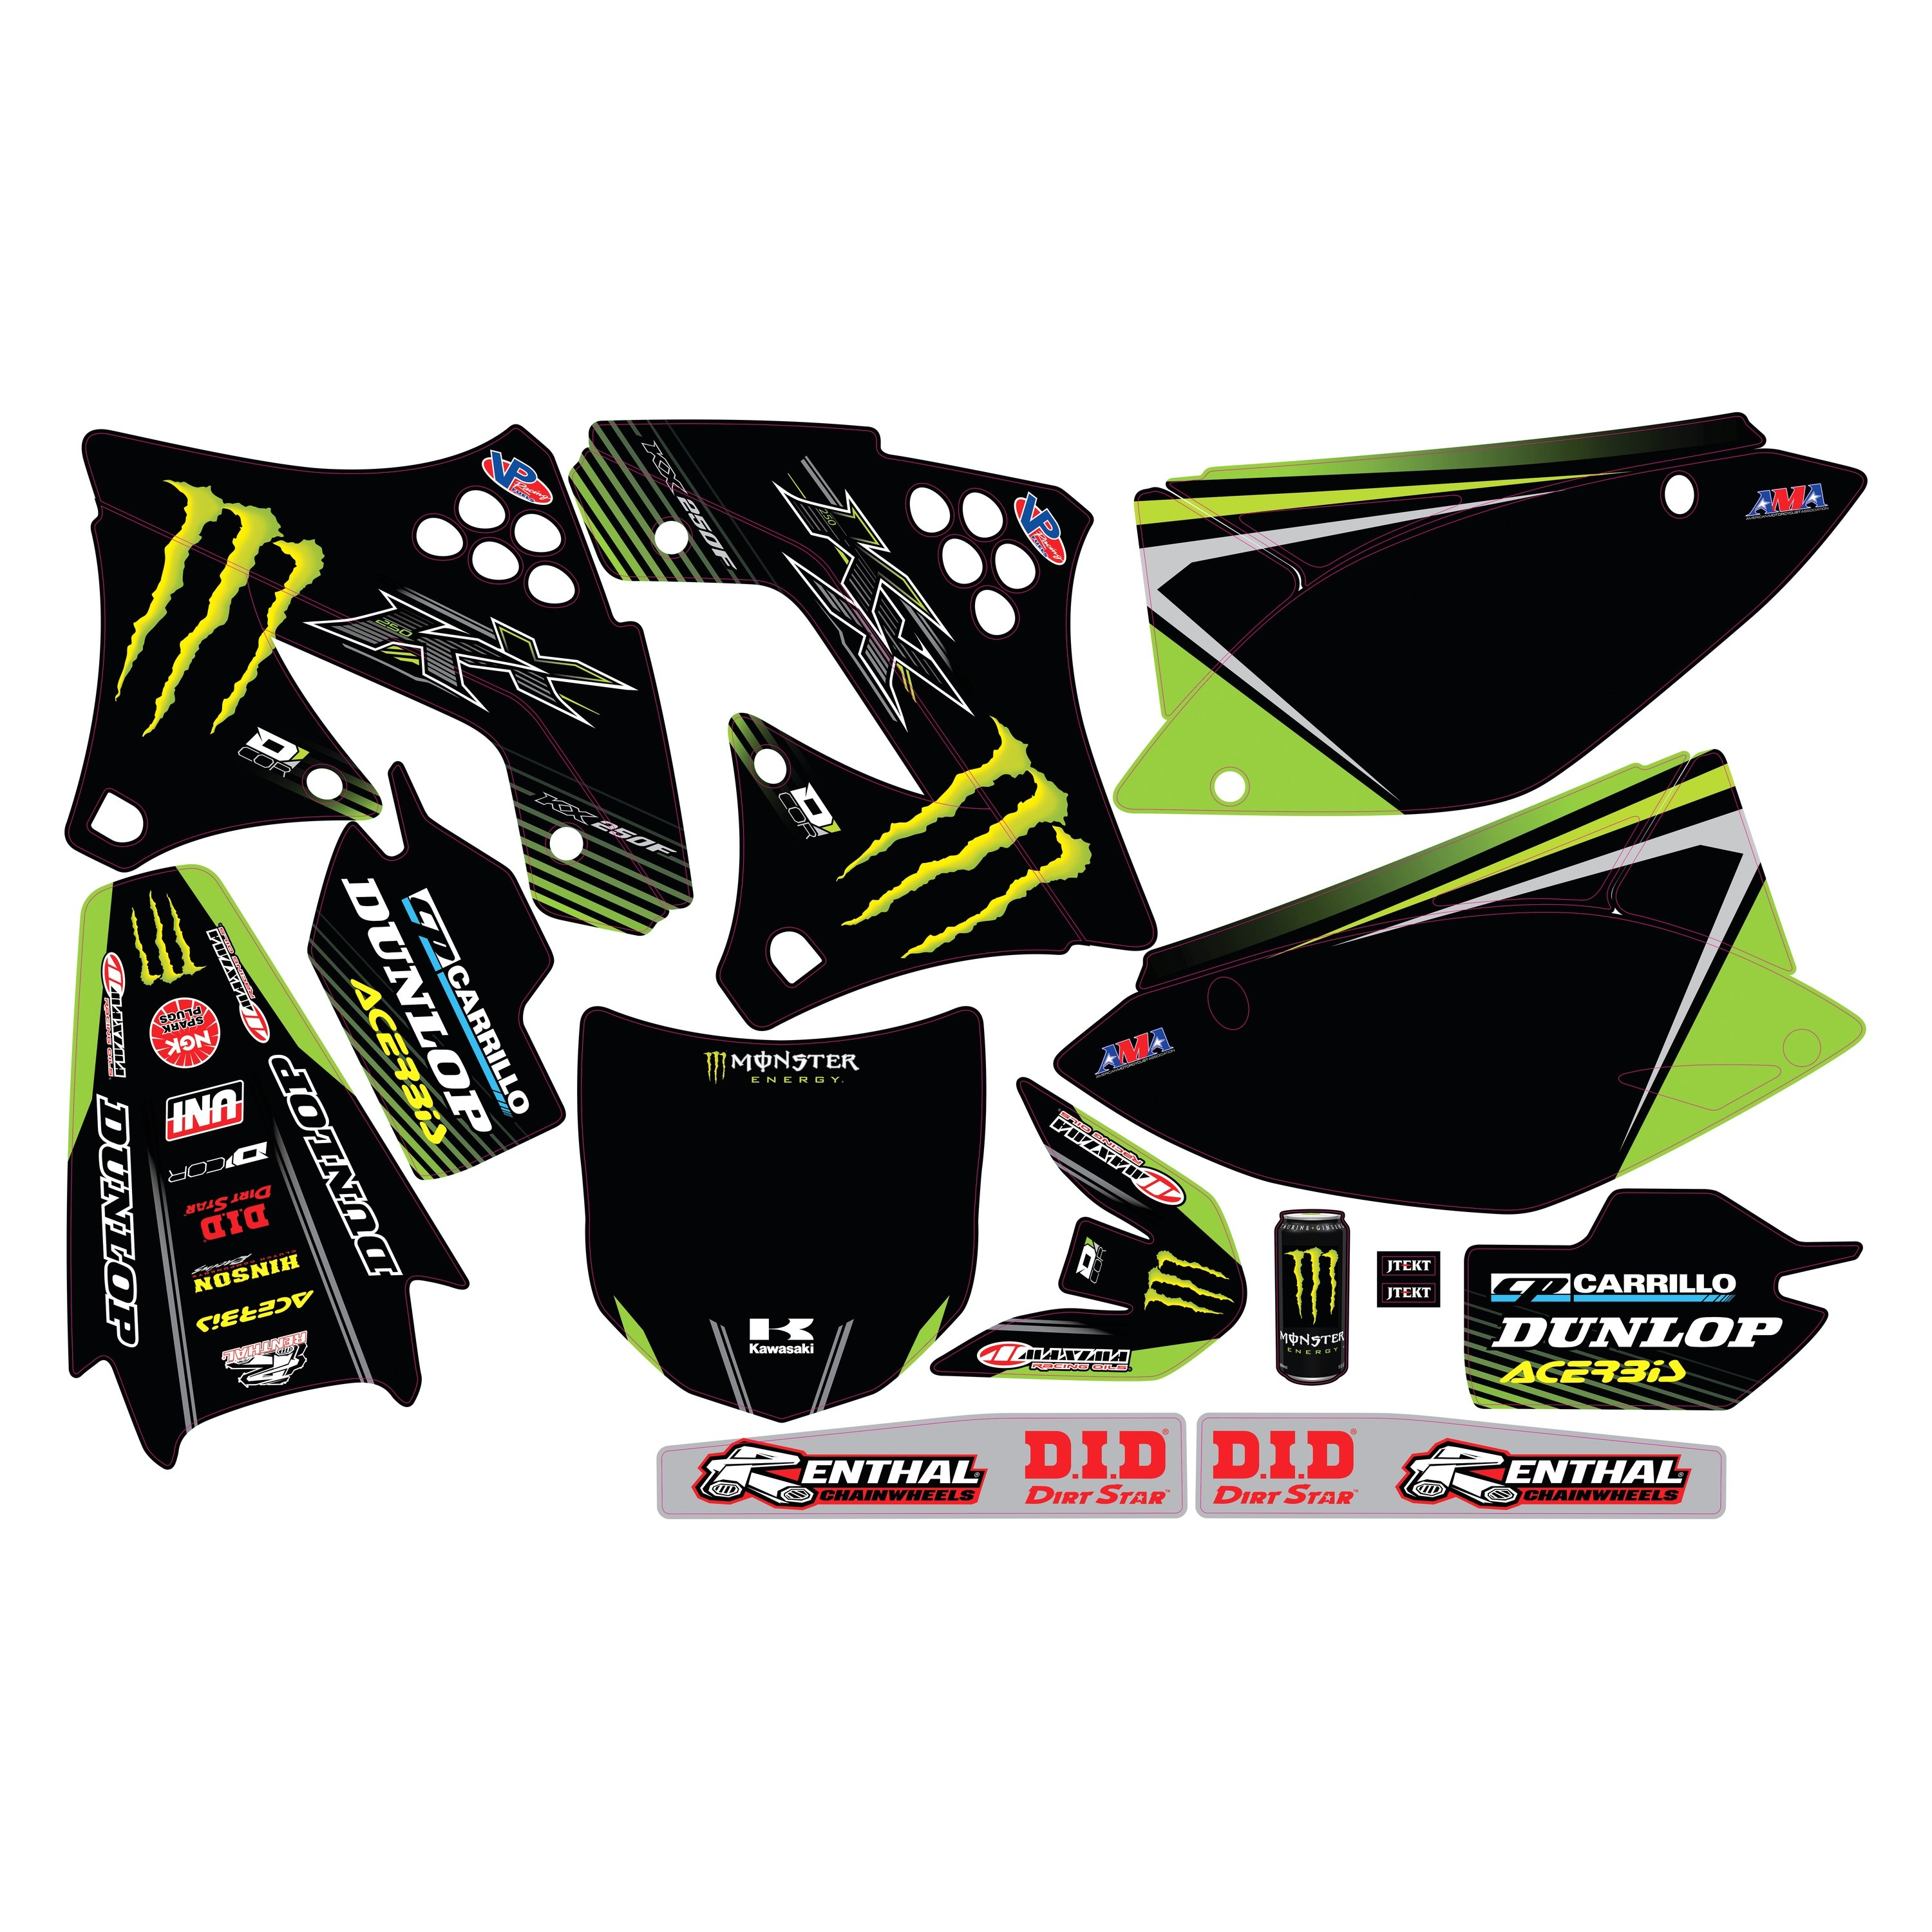 D'cor Visuals® 20-20-618 - 2018 Monster Energy Complete Graphic Kit